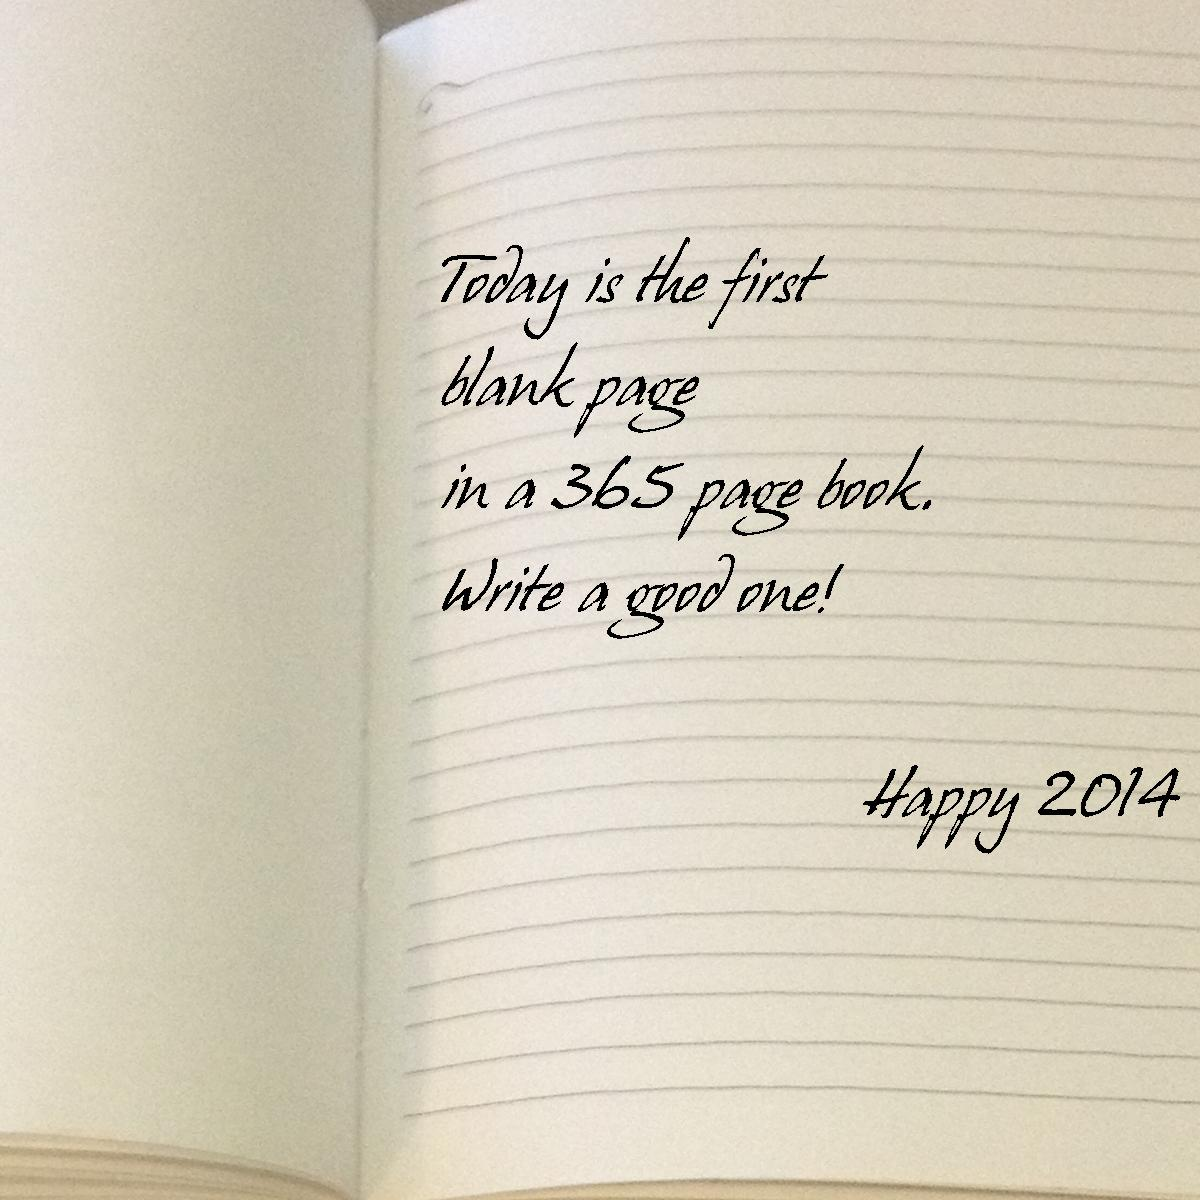 Make the Most of2014!